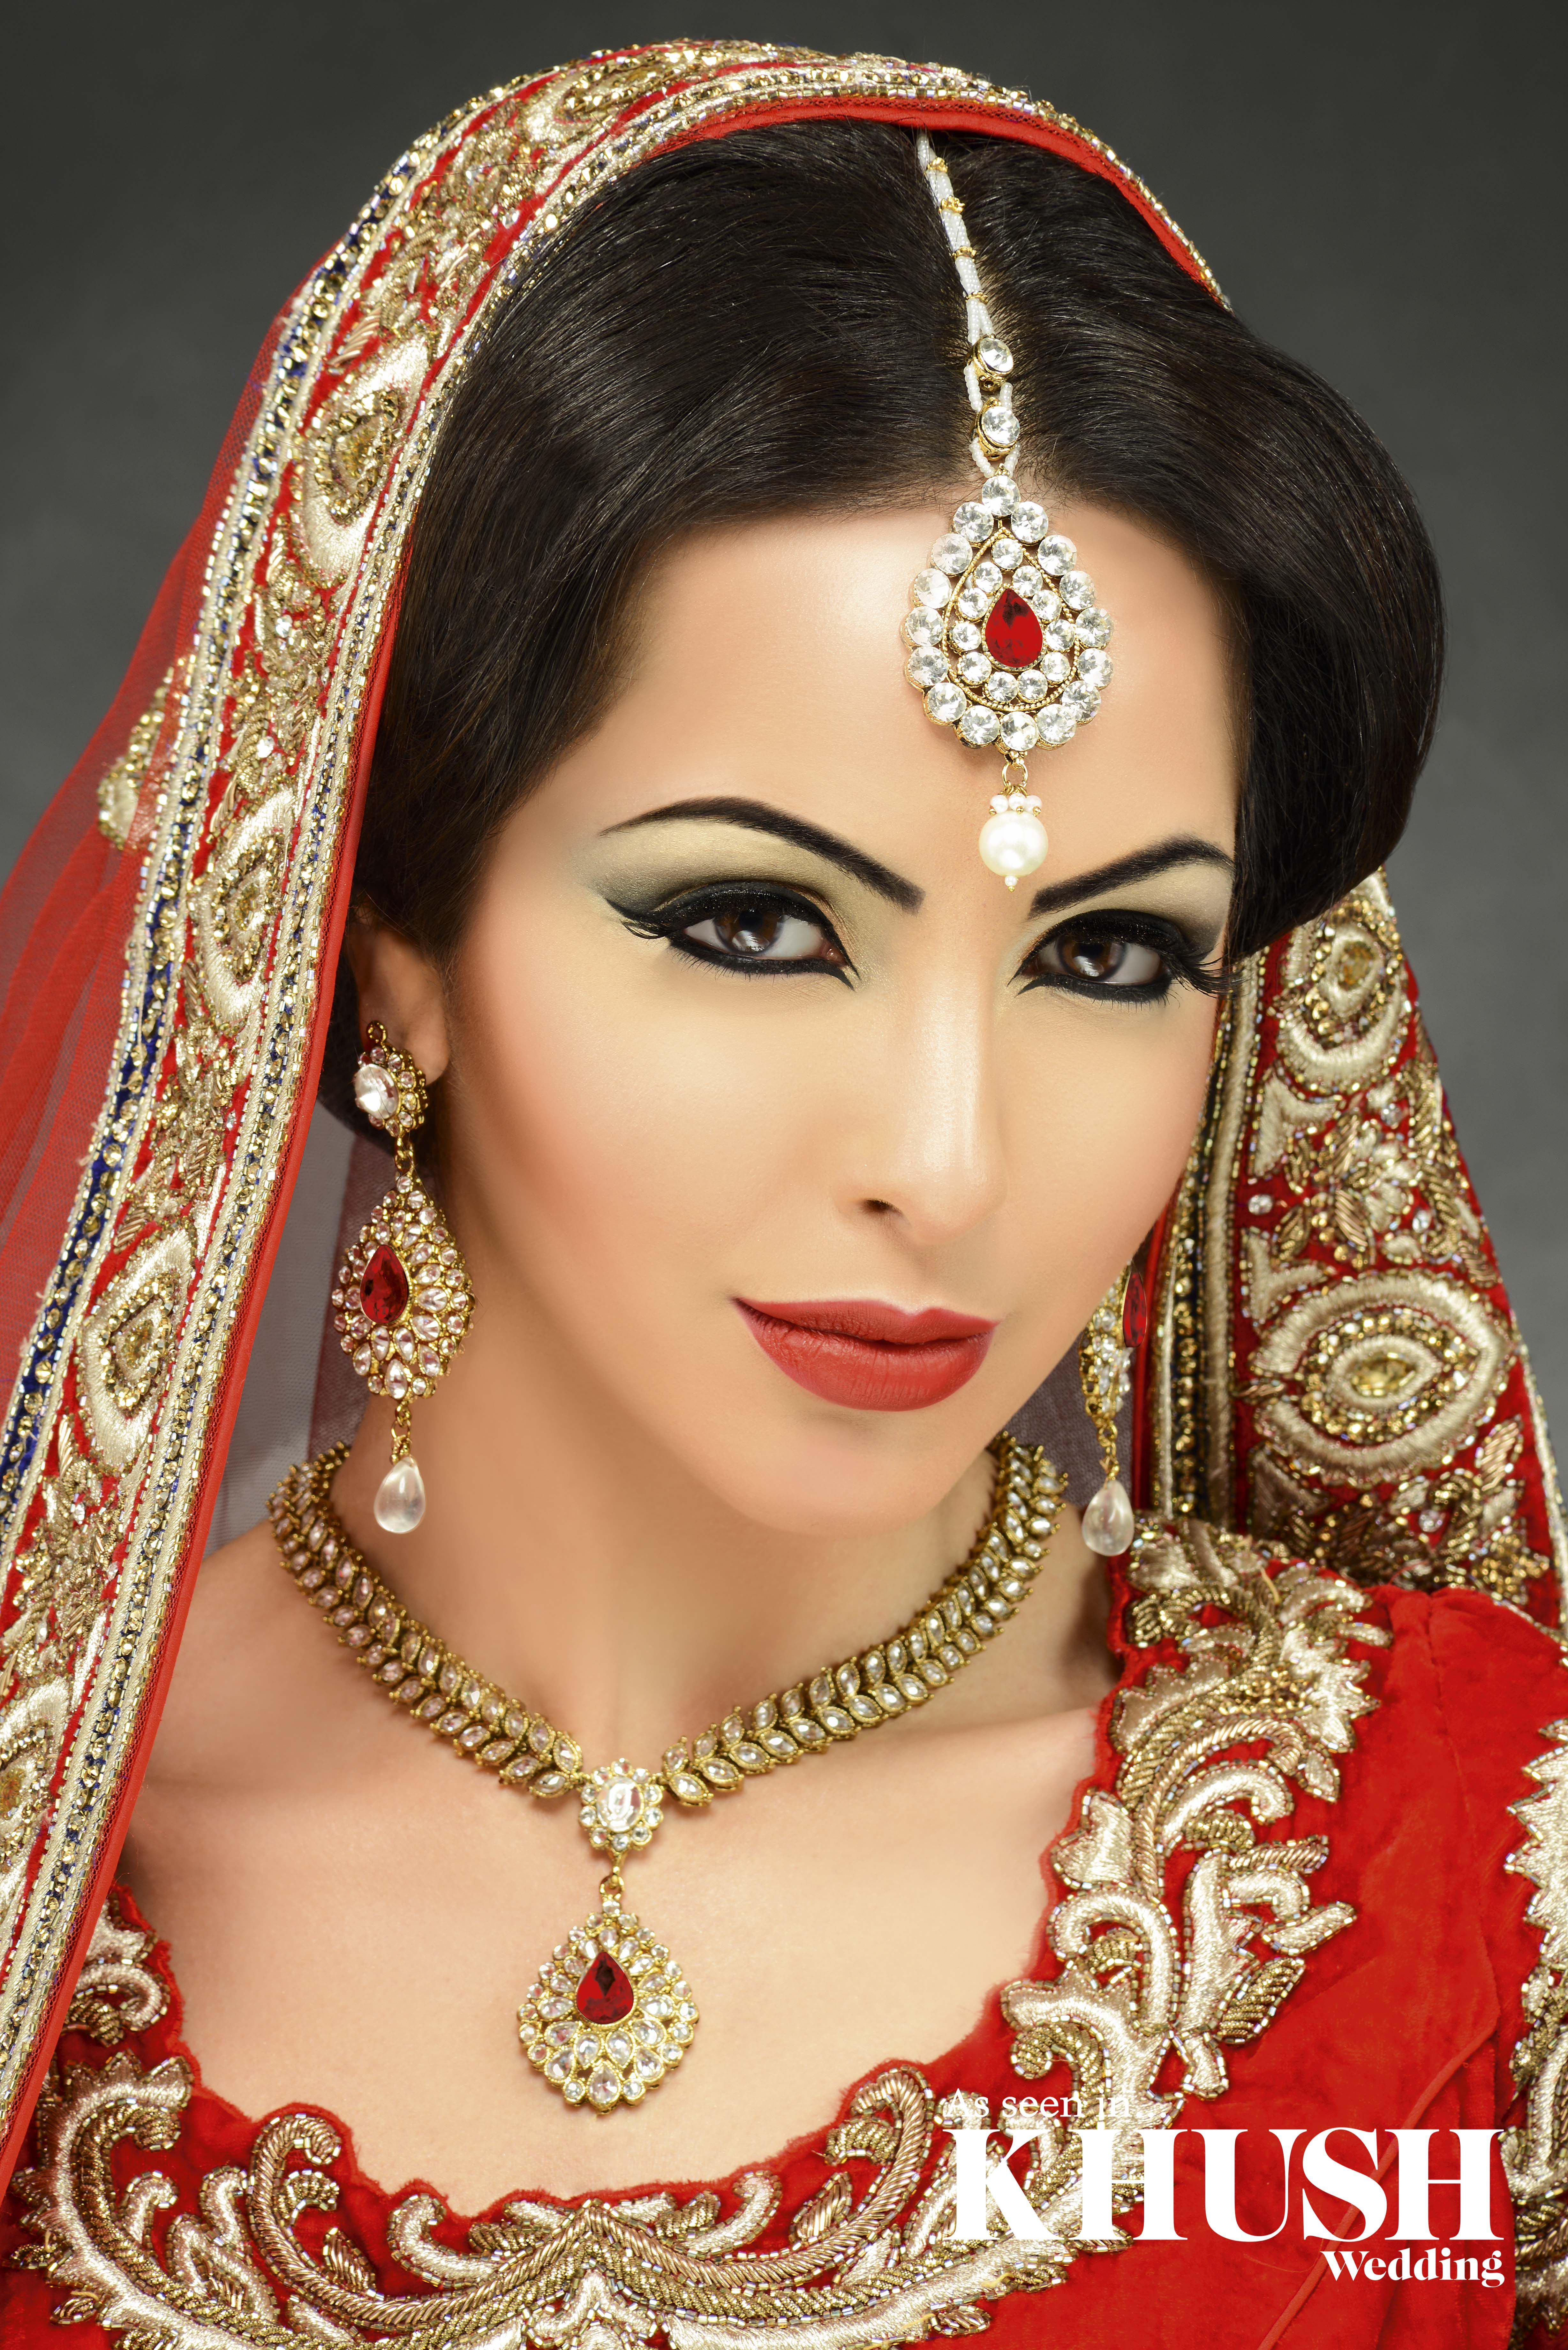 majestic bridal beauty by rumina begum t: +44(0)7949 761 819